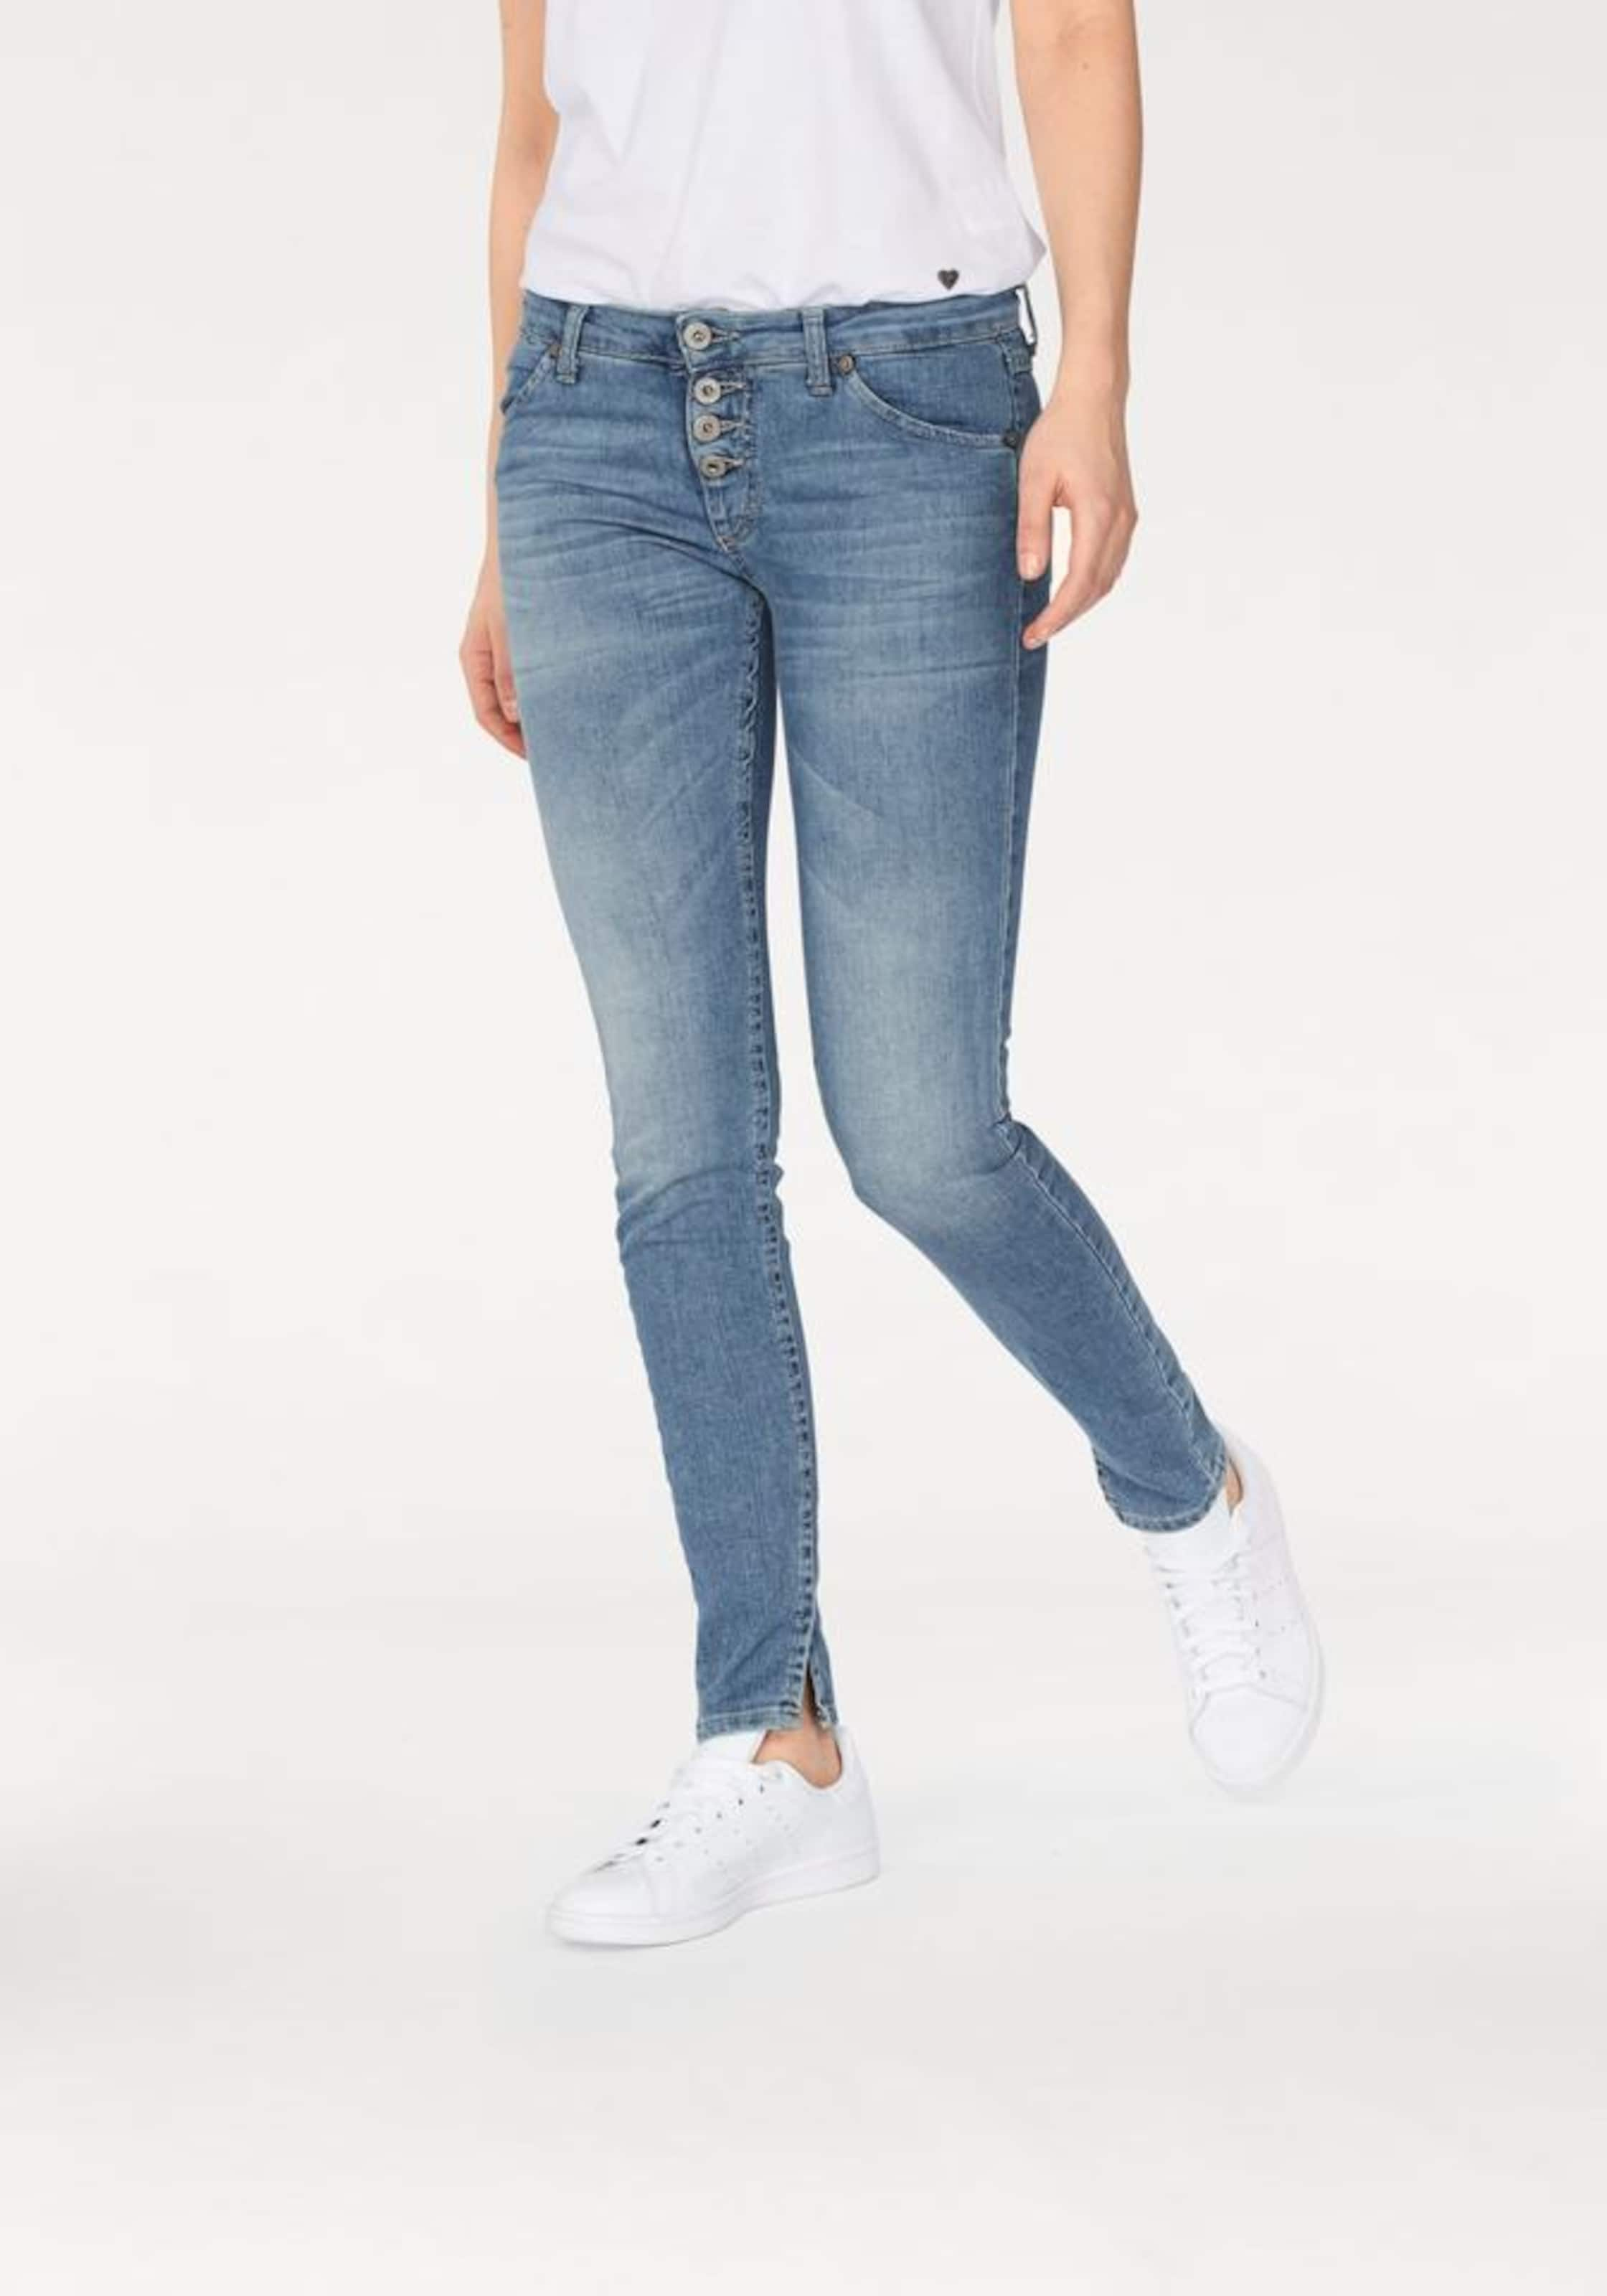 PLEASE 'P90' Skinny-fit-Jeans Auslass Für Billig WNc0lXo5v